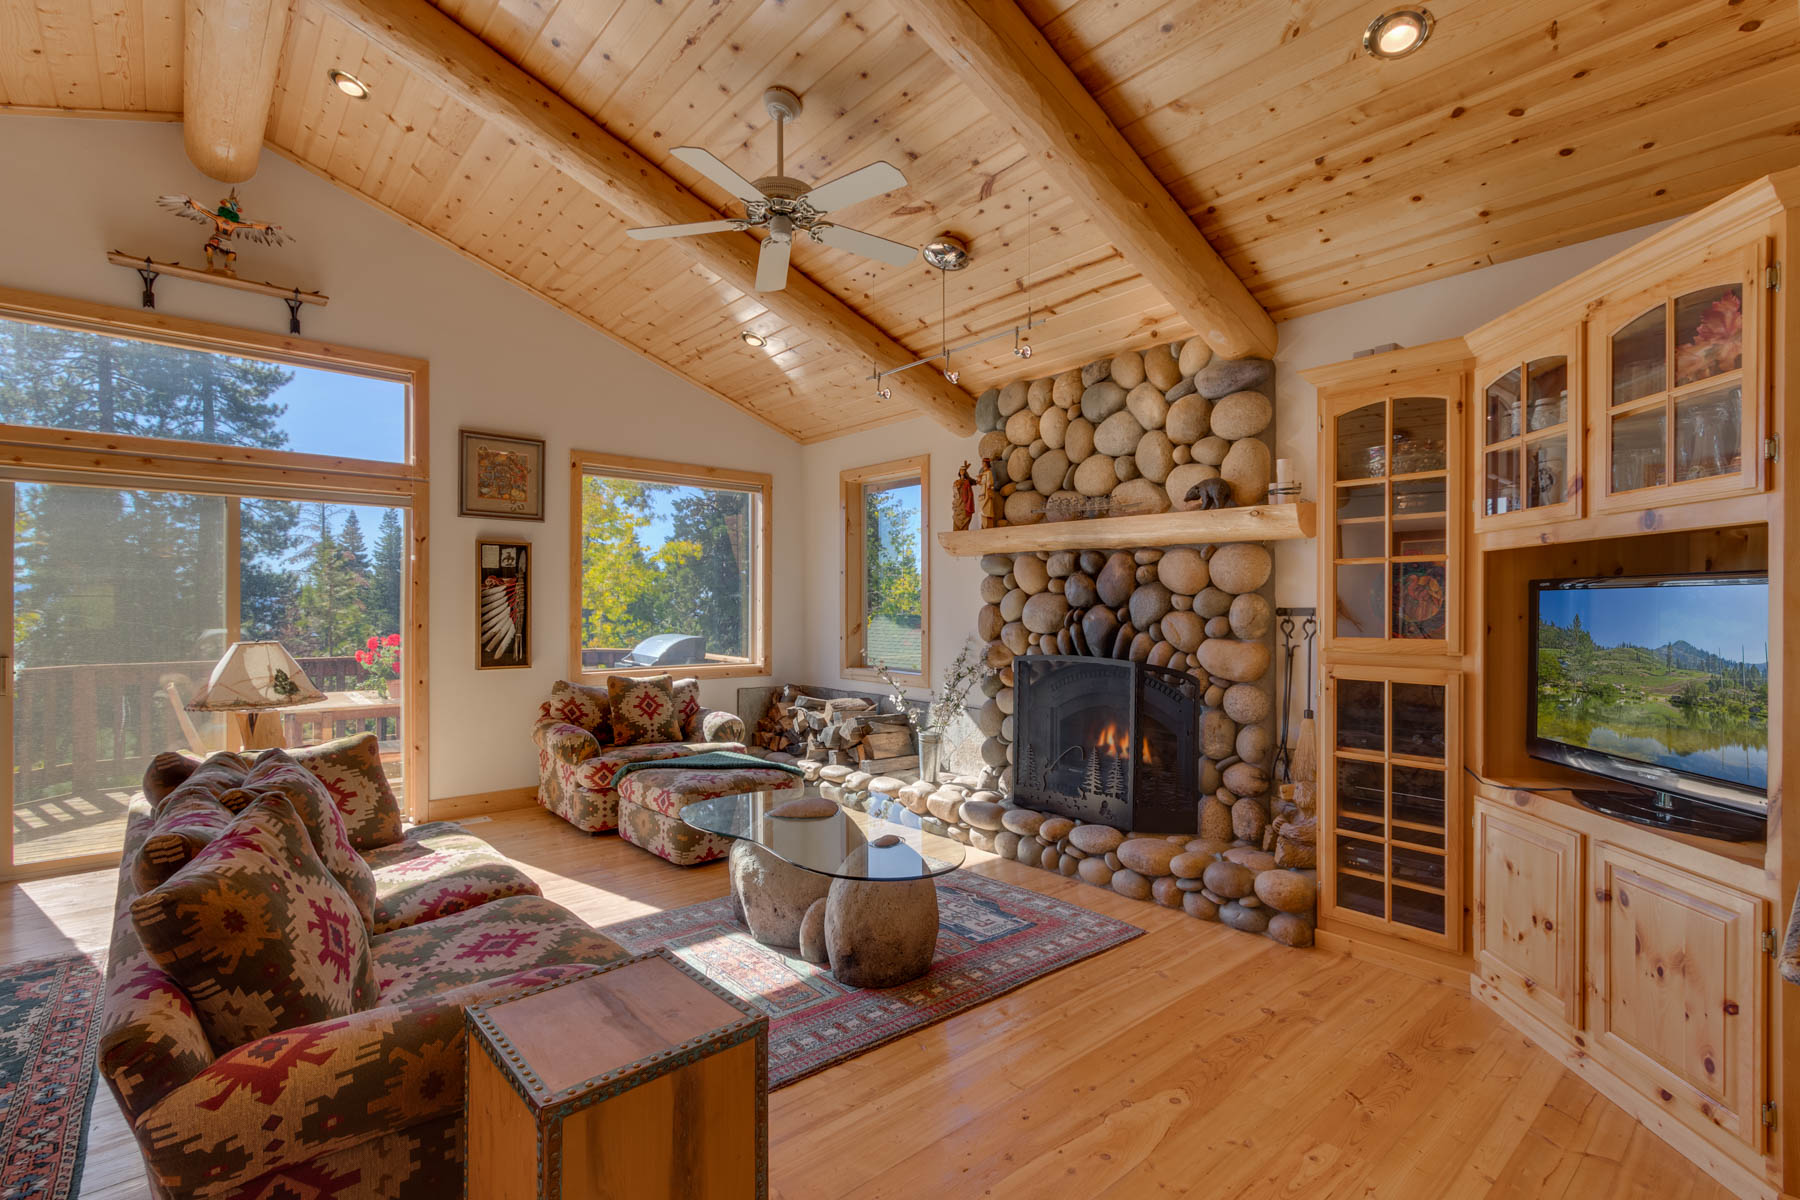 Additional photo for property listing at 375 Fawn Lane, Tahoe City, CA 96148 375 Fawn Lane Tahoe Vista, California 96148 United States